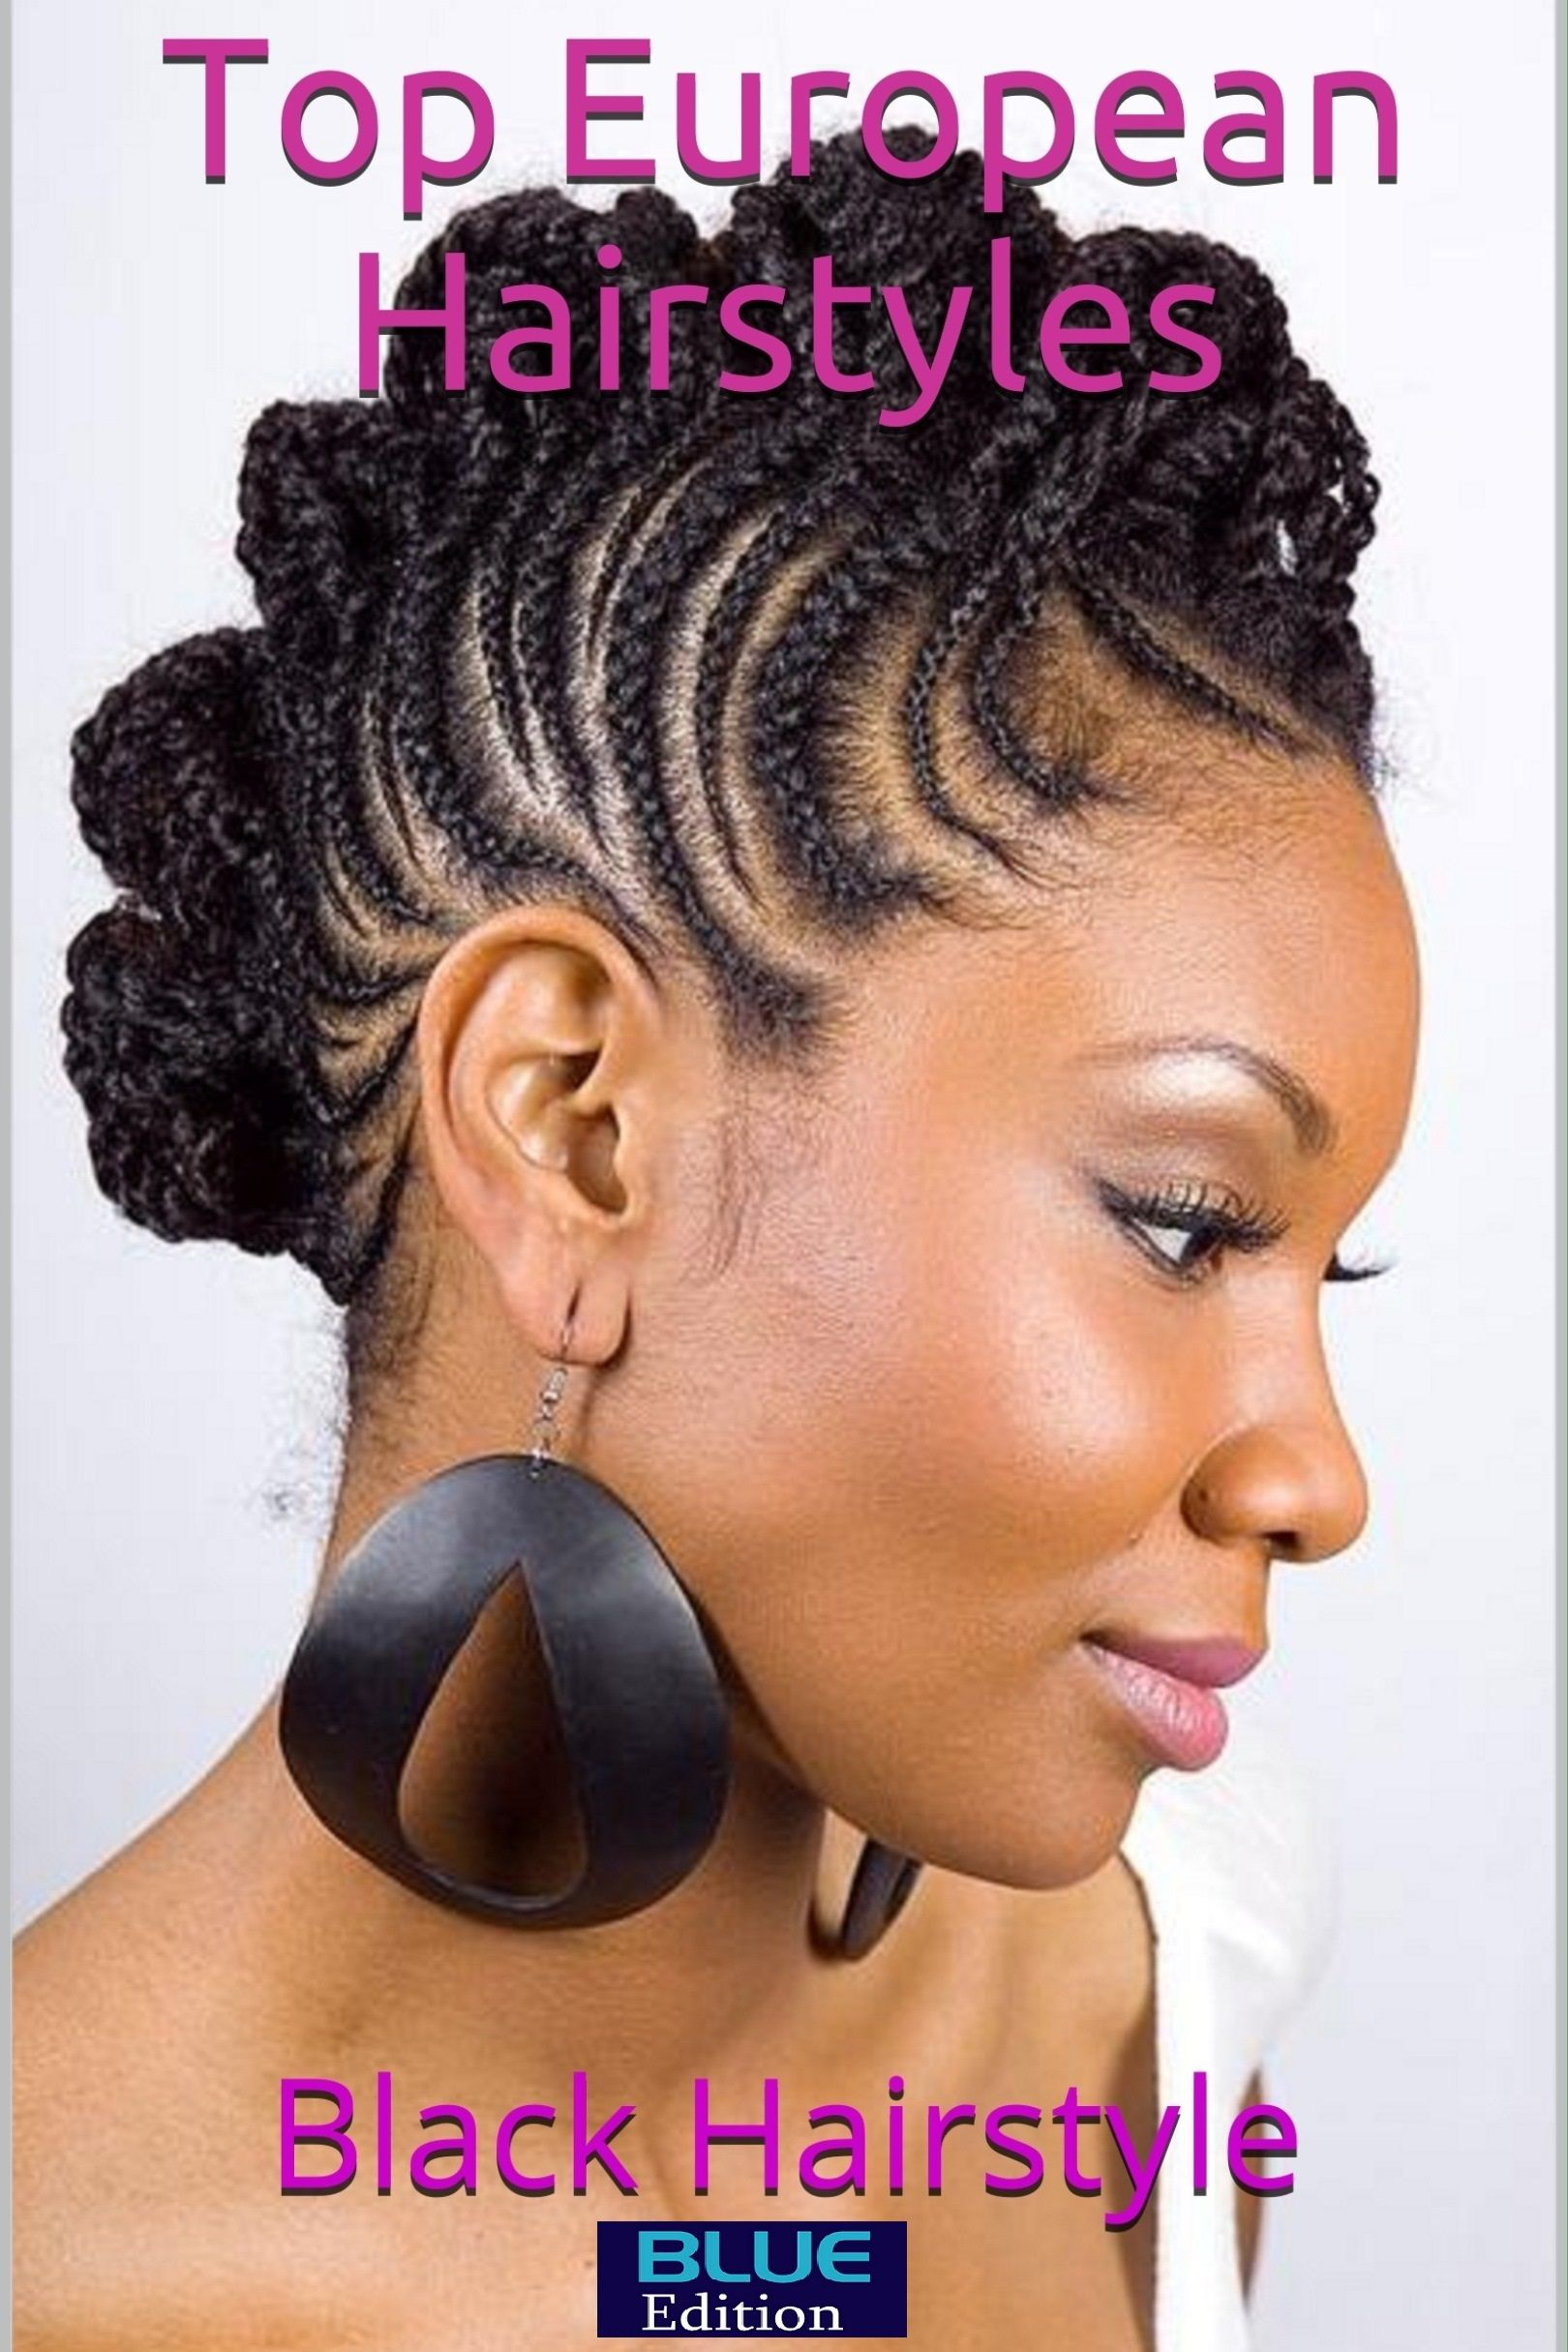 Black Hairstyles Book Hippie Hairstyle Books Hair Styles Natural Hair Styles Easy